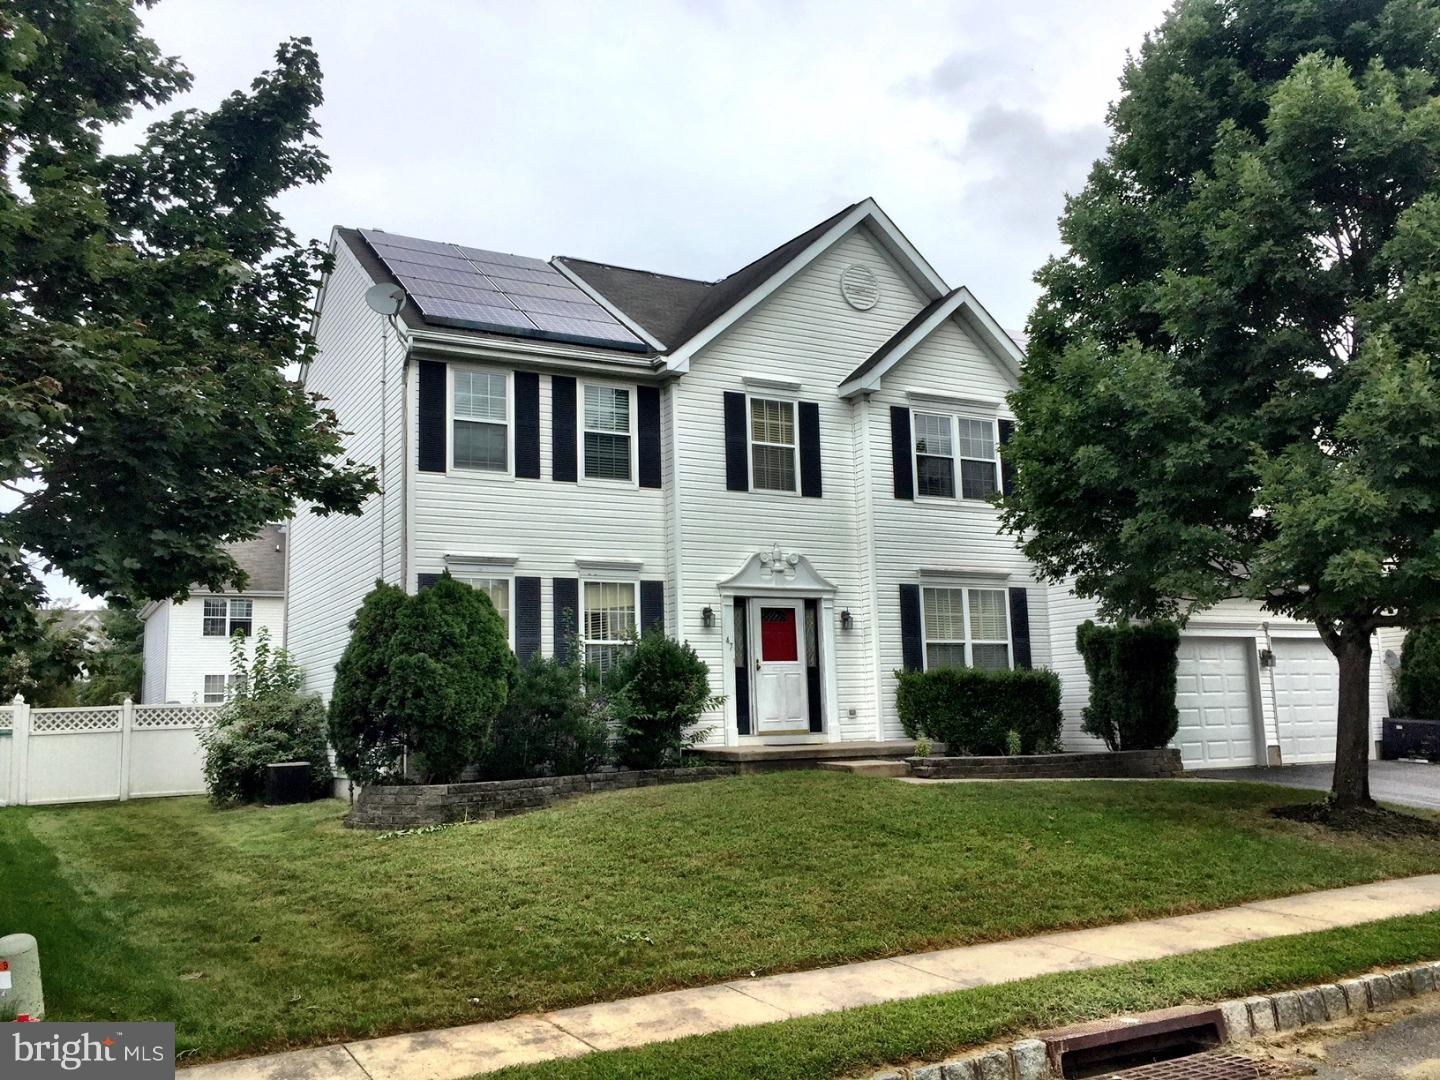 Single Family Home for Sale at 47 CANIDAE Street Burlington Township, New Jersey 08016 United States